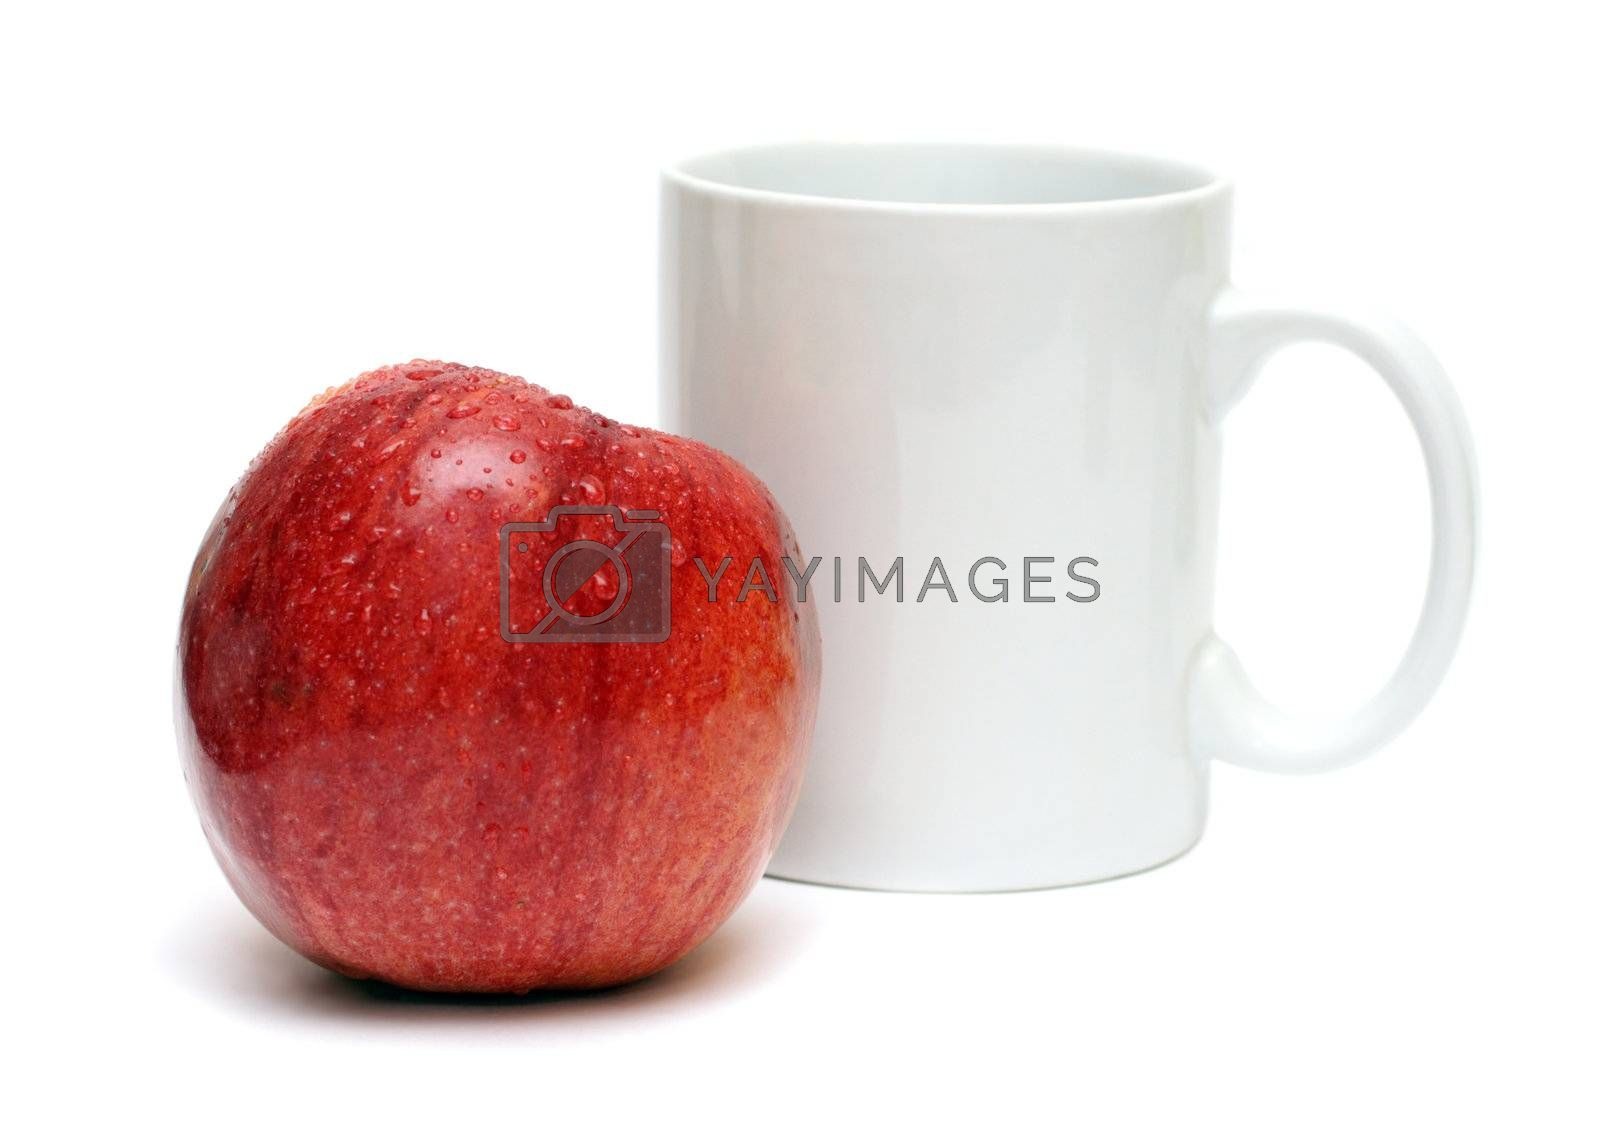 red apple and white mug isolated on white